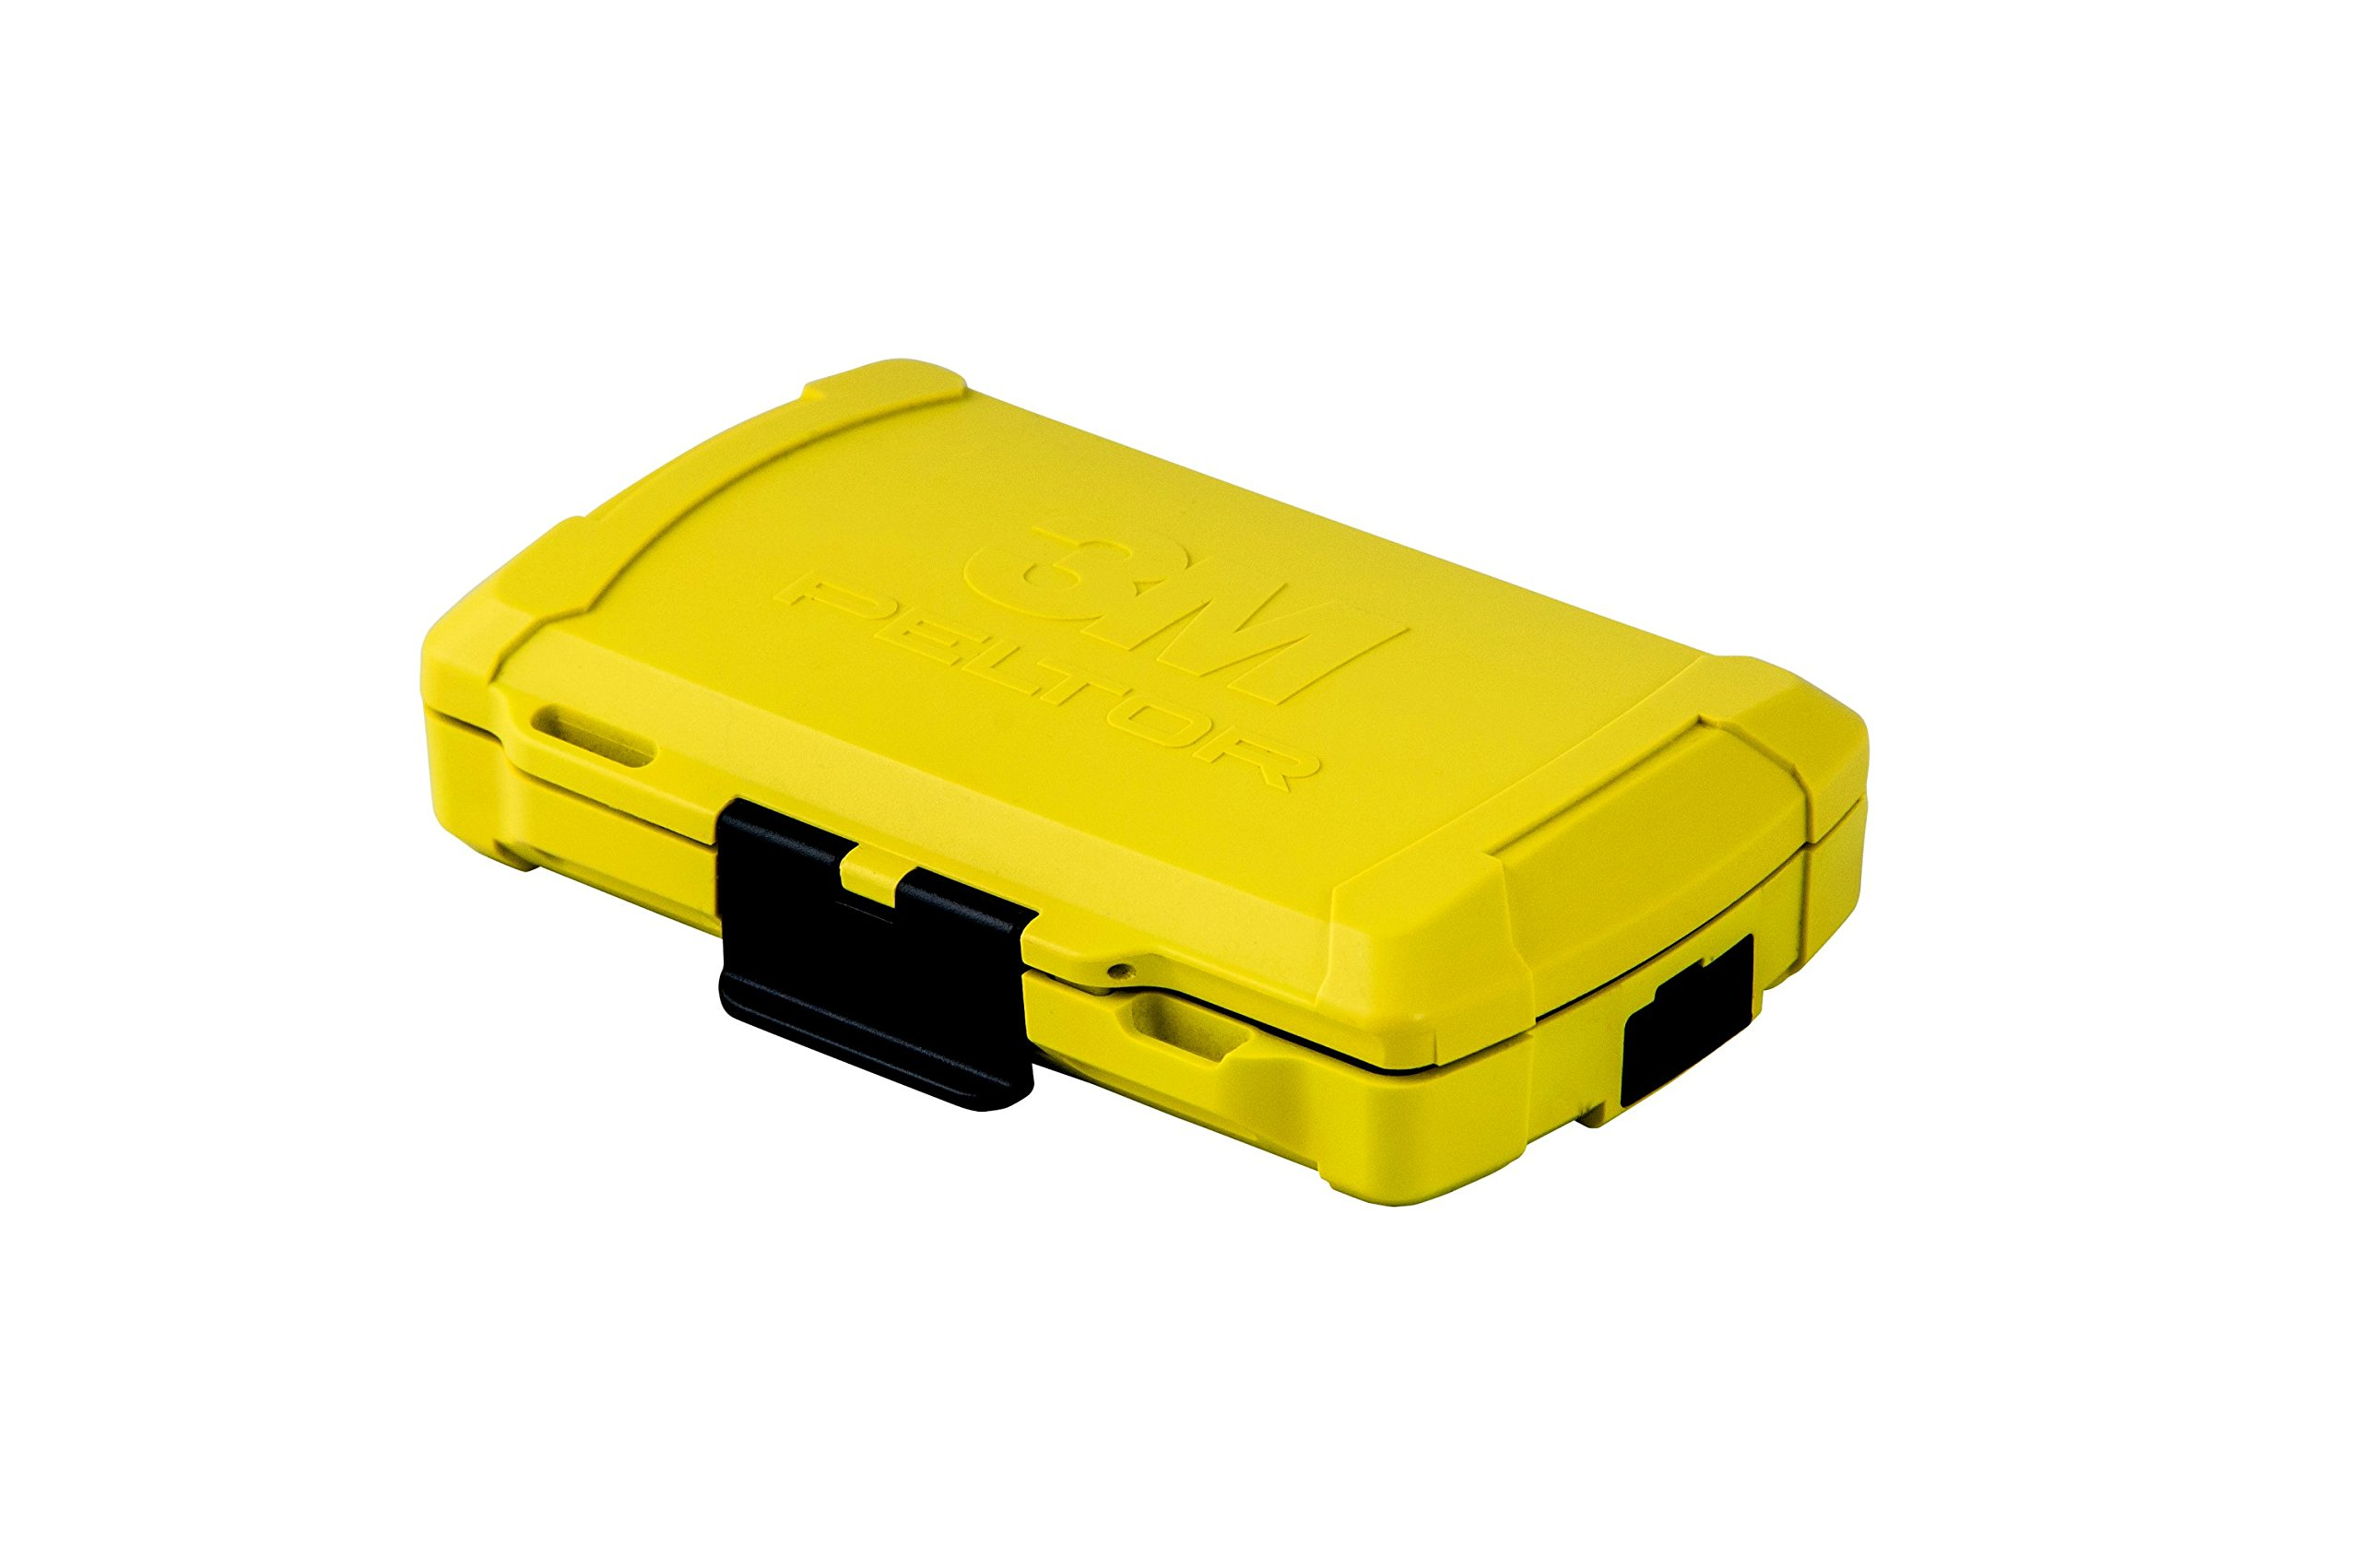 3M PELTOR 67071 Yellow LEP-100/200 Replacement Charging Case - IP54 by 3M Personal Protective Equipment